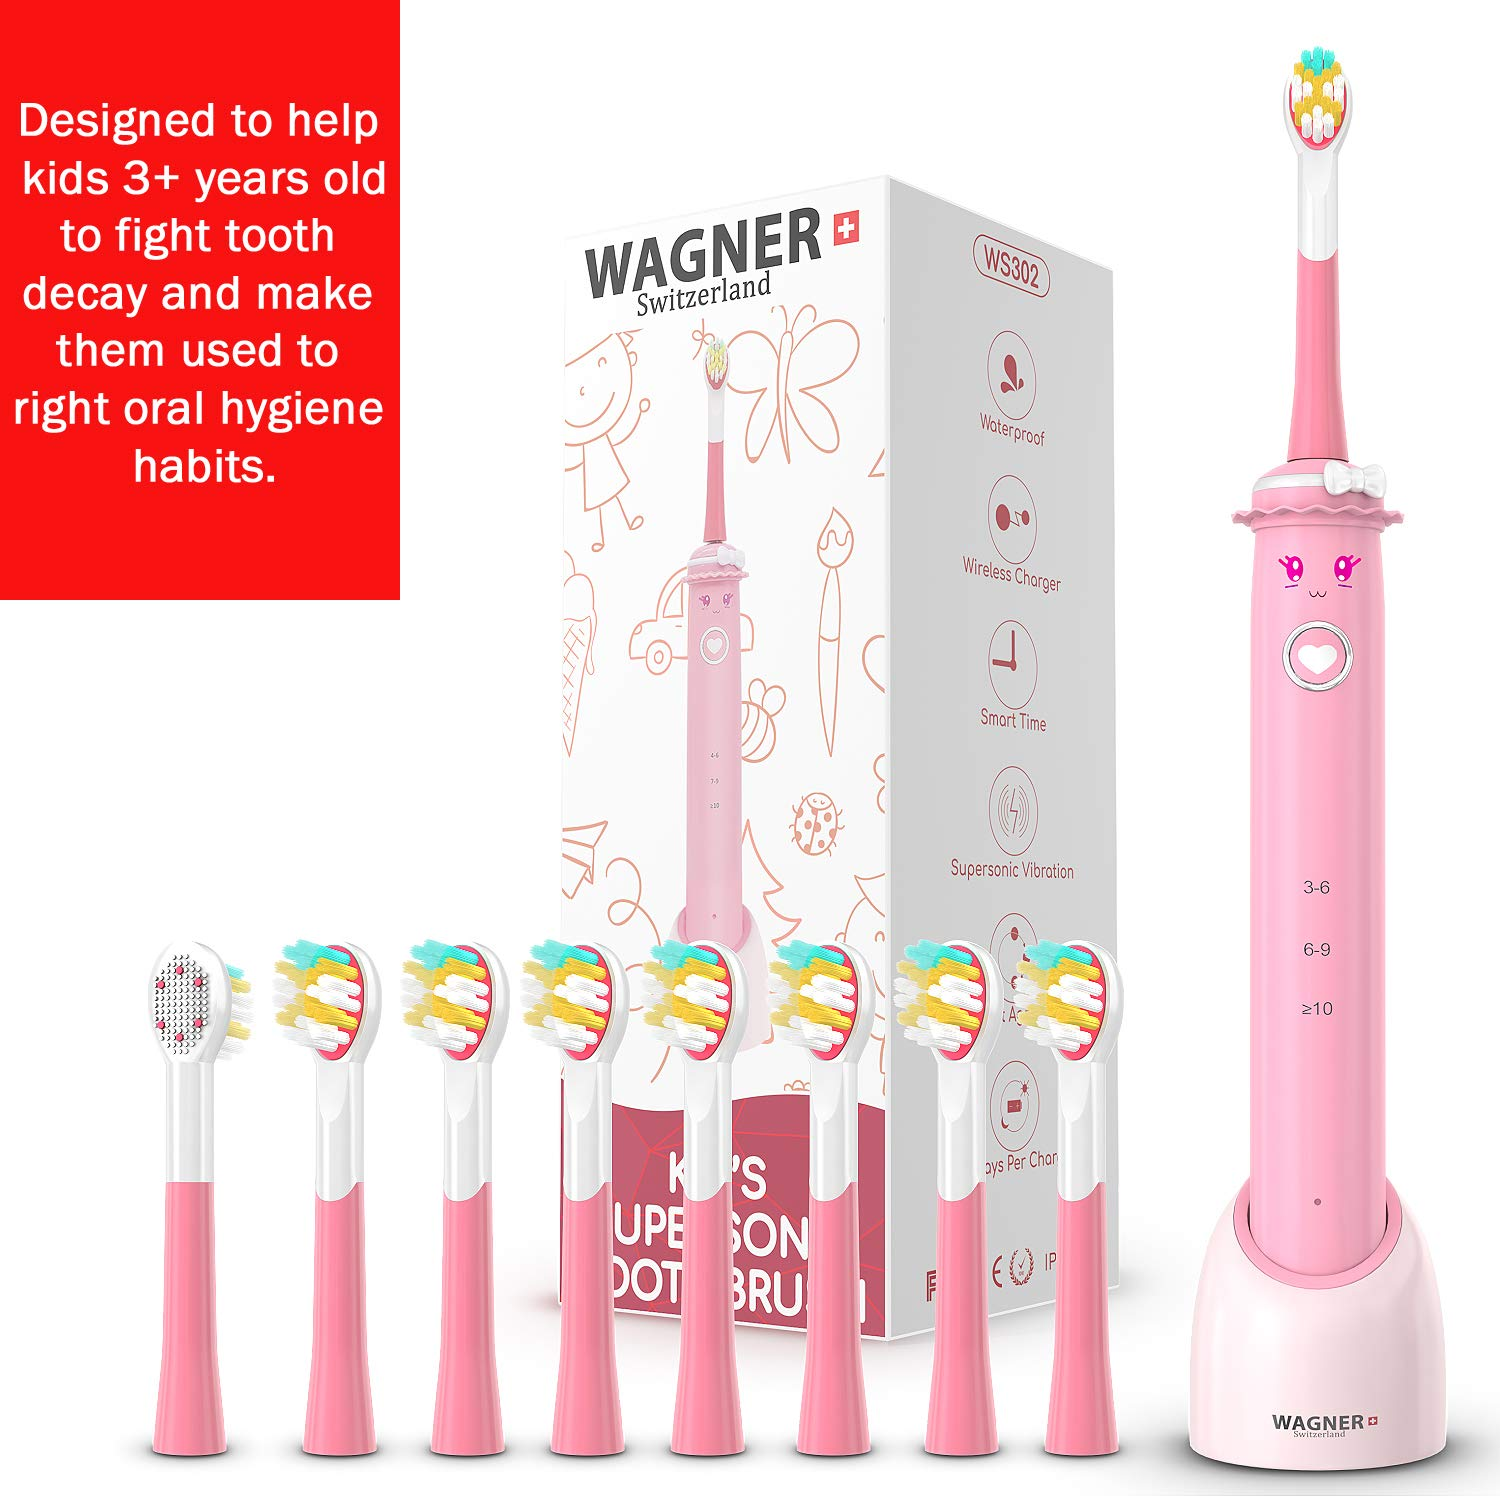 WAGNER Switzerland SuperSonic toothbrush for girls 8 reversible brush heads for teeth and tongue cleaning with DuPont bristles Vibration Speed Control Wireless charging w Smart Timer. Waterproof